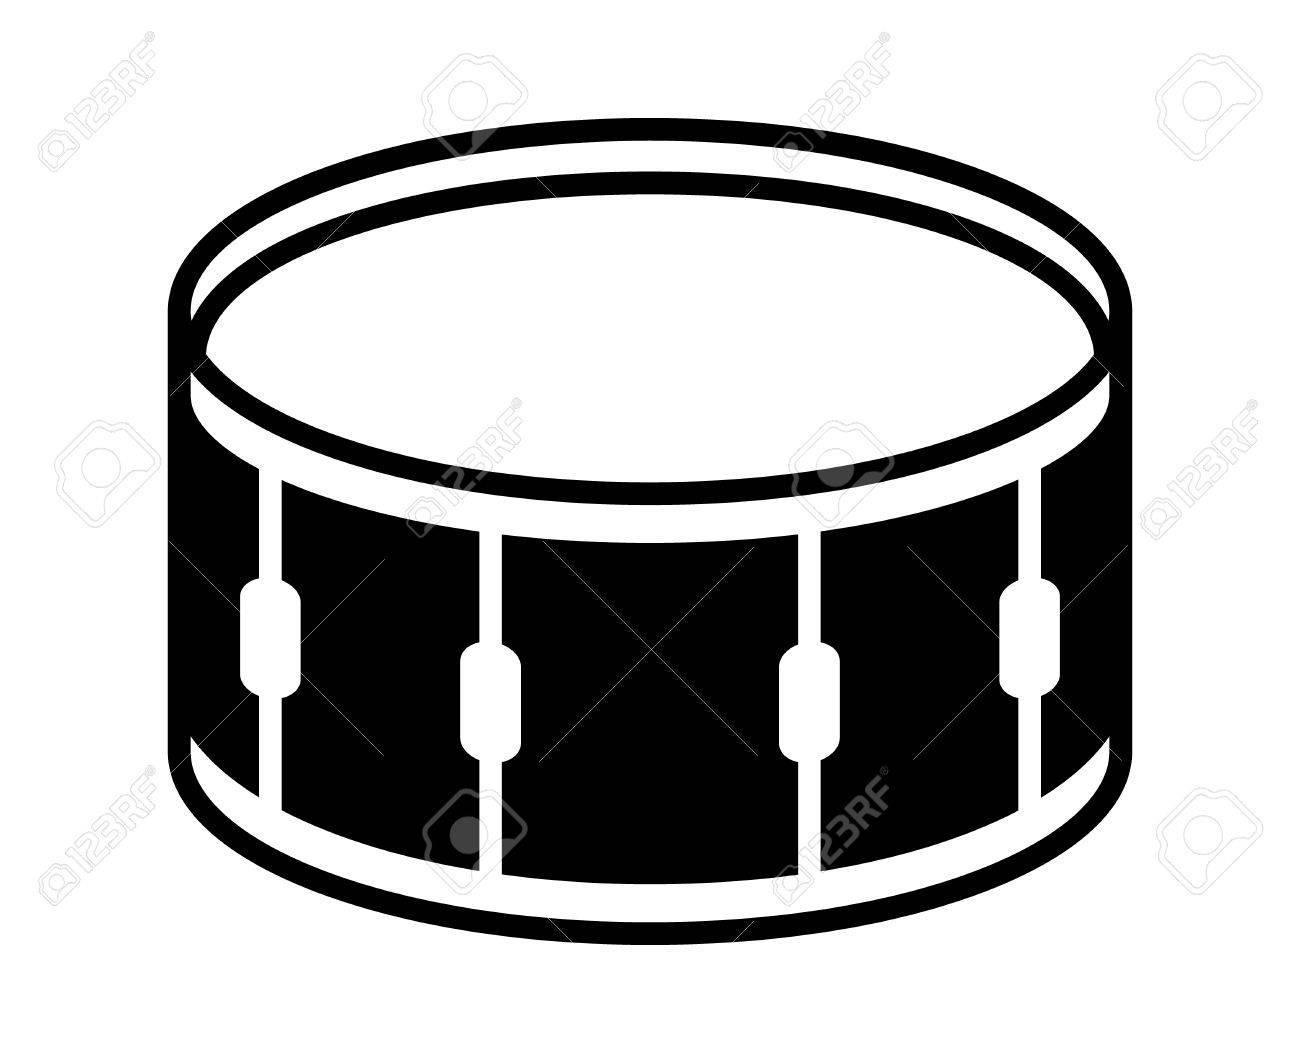 Snare drum clipart black and white 3 » Clipart Portal svg freeuse download